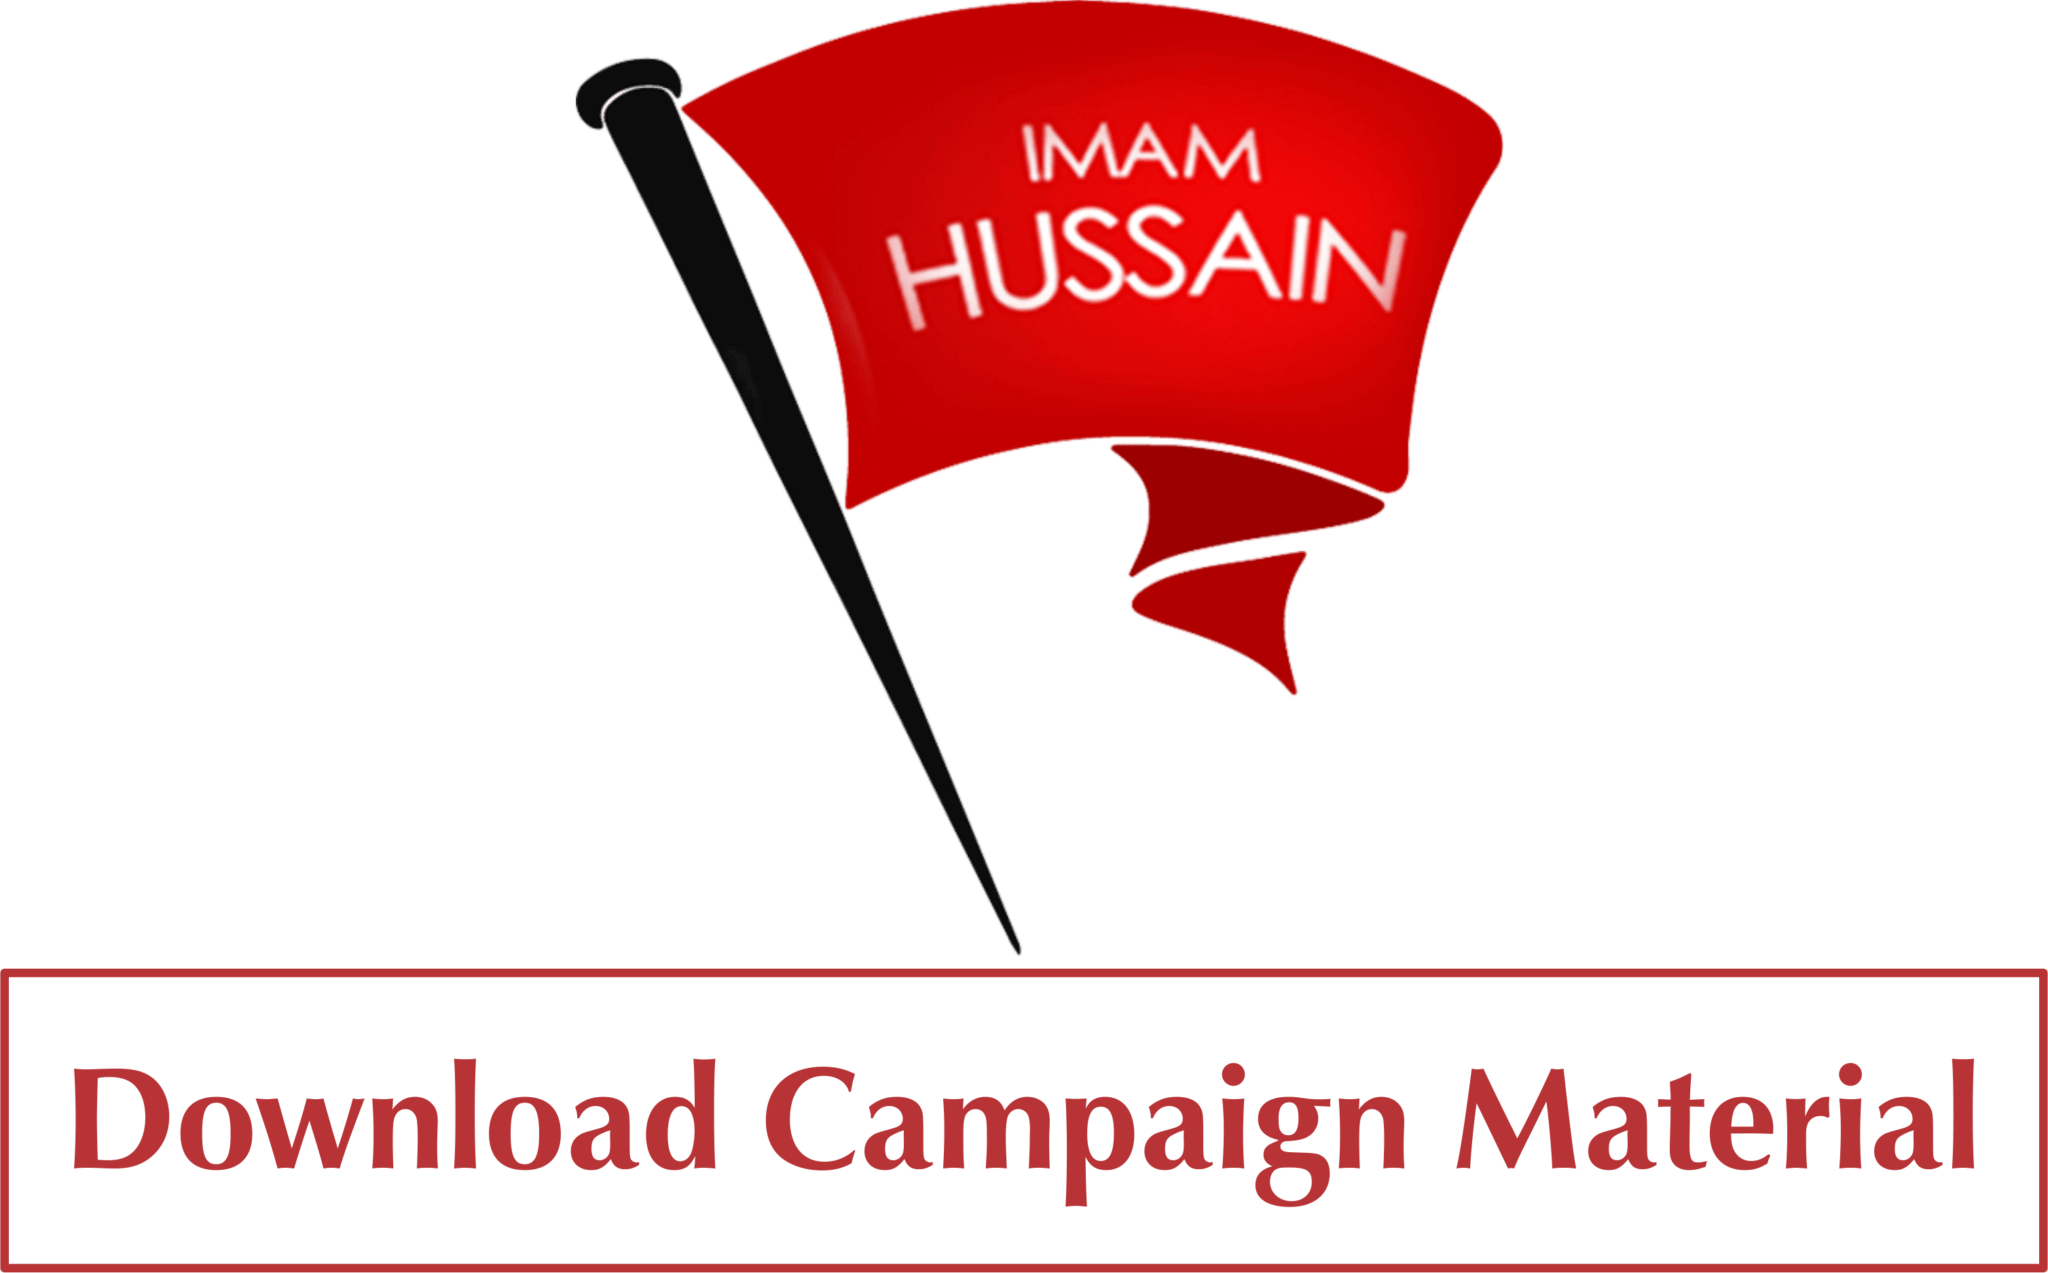 Download Campaign Material   Stand with Dignity: Hussain